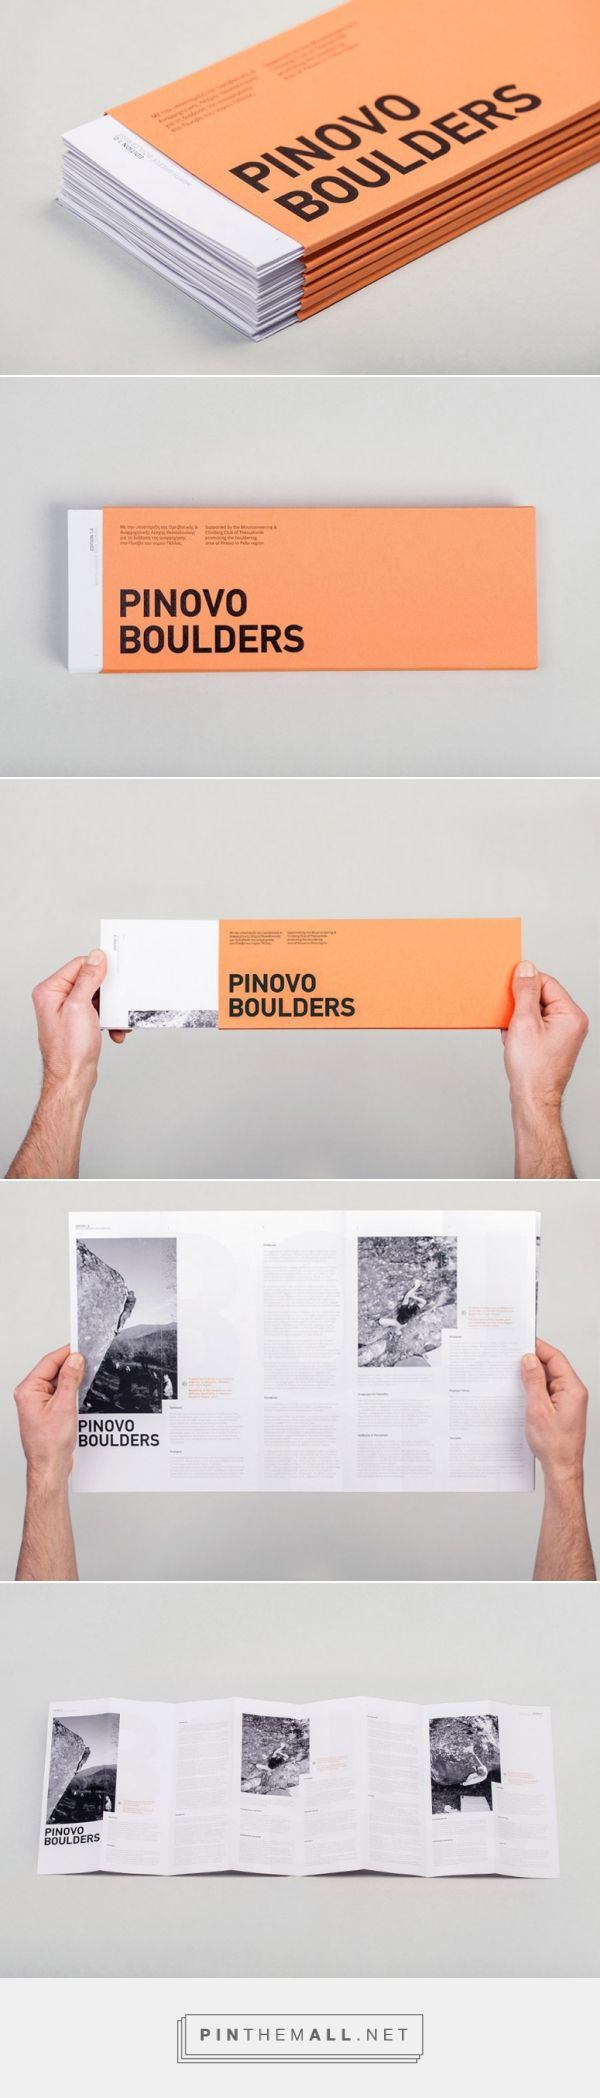 FPO: Pinovo Boulders Brochure - created via http://pinthemall.net